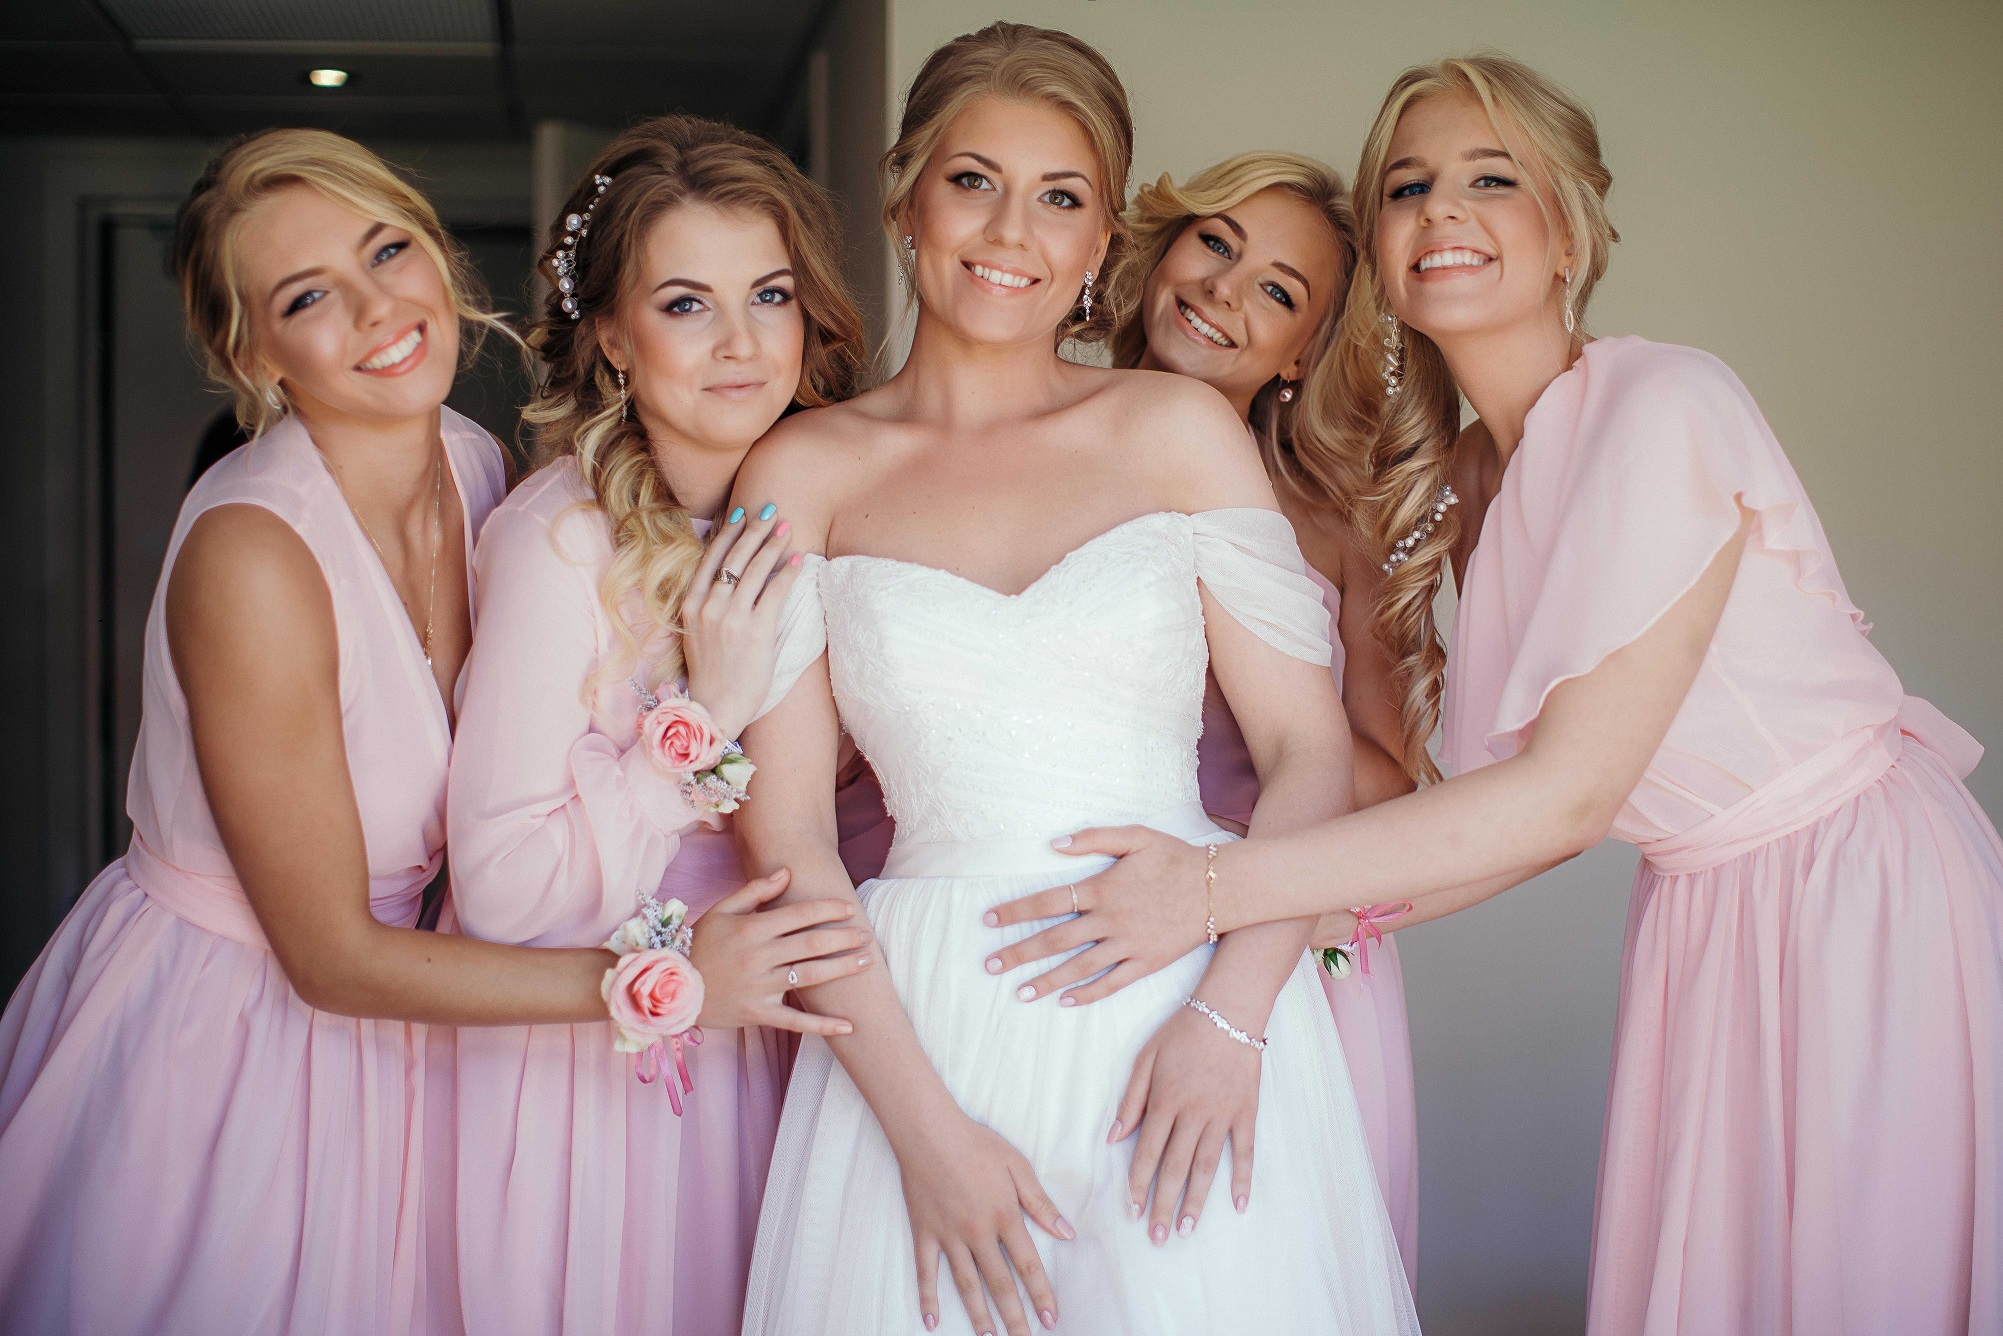 Real Bride Anna with her bridesmaids